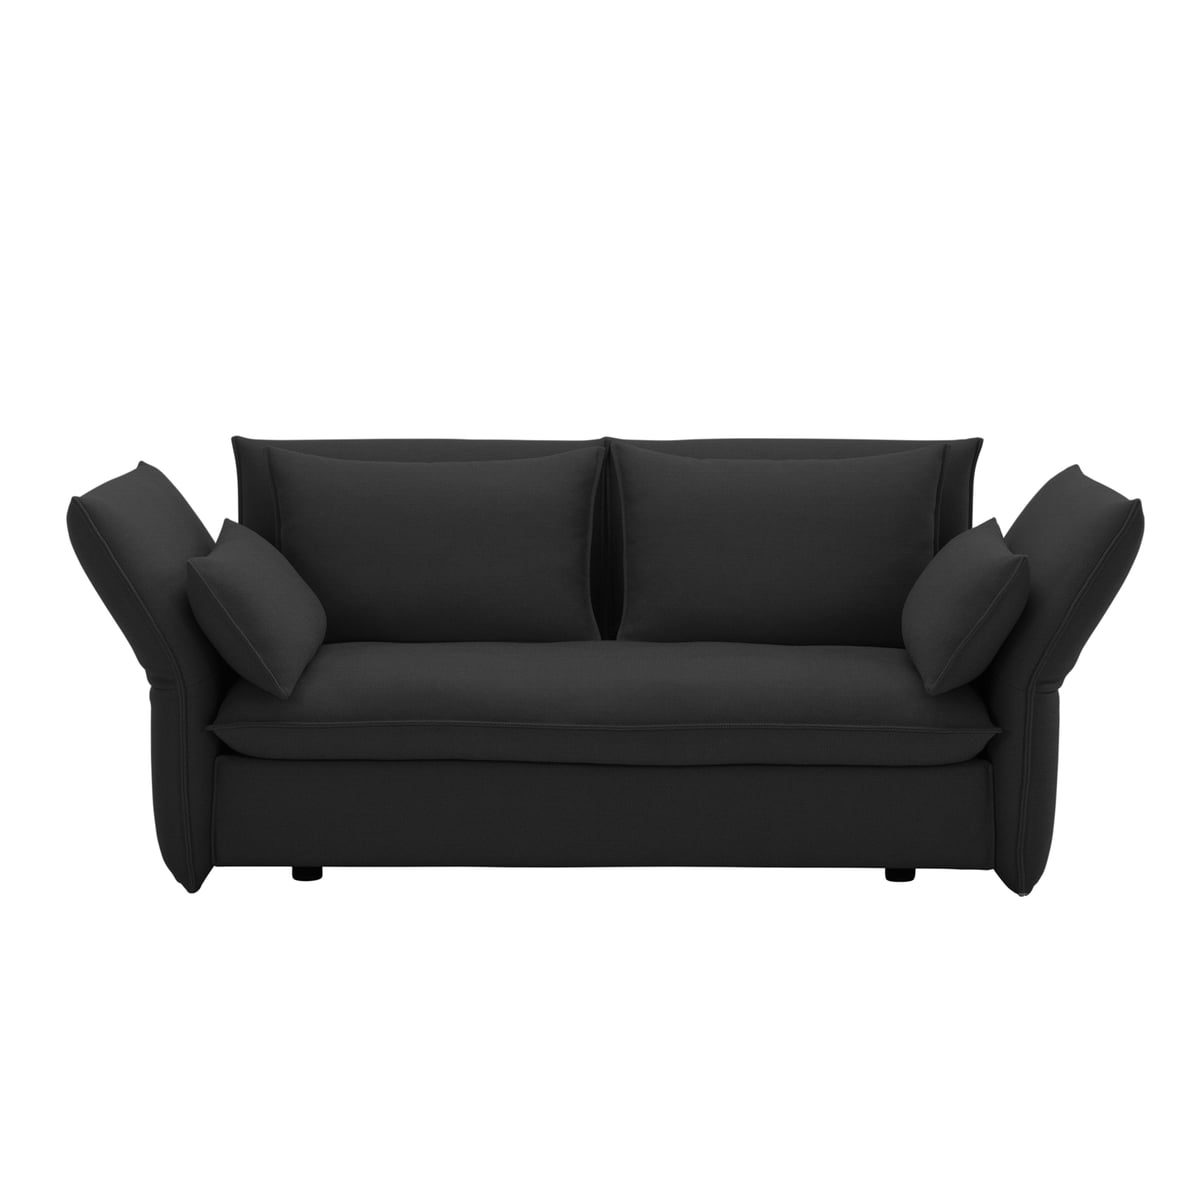 mariposa sofa 2 5 seater by vitra in the shop. Black Bedroom Furniture Sets. Home Design Ideas